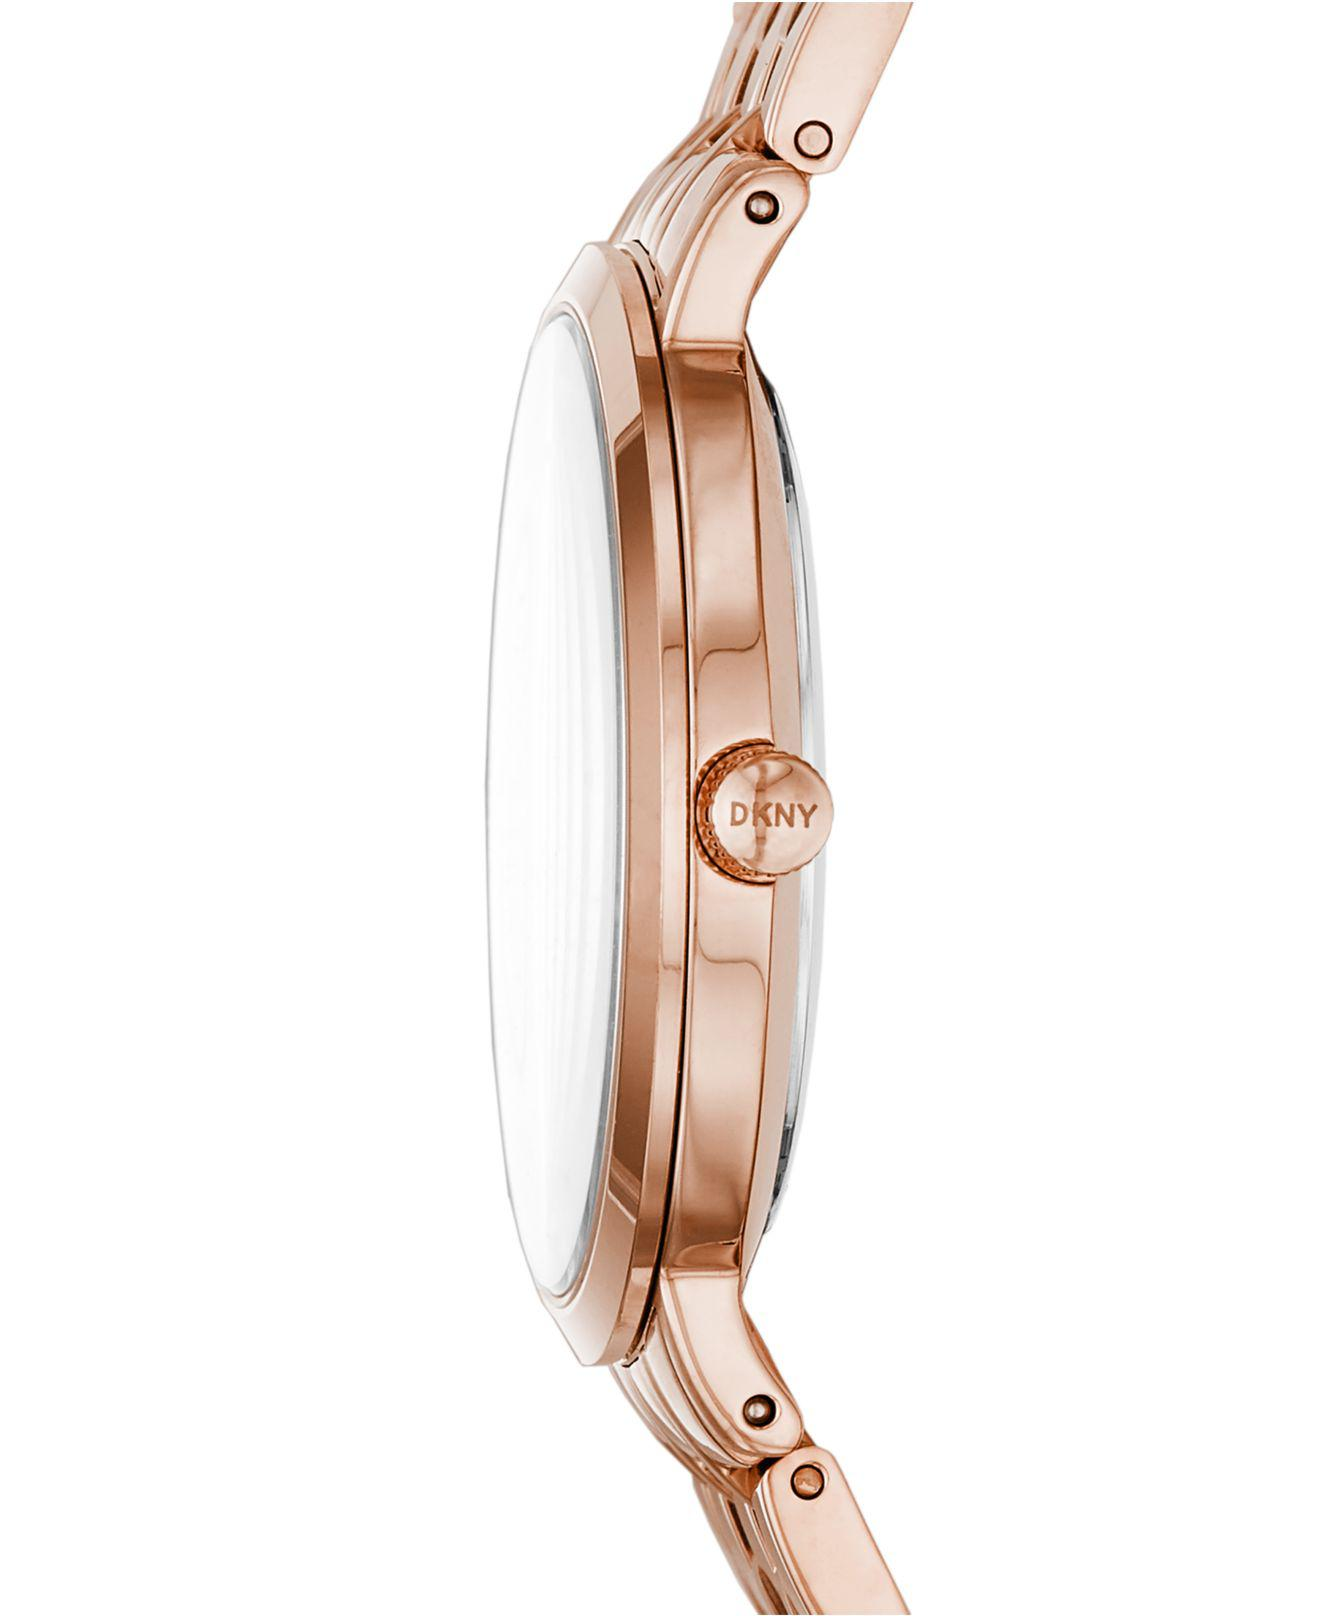 Lyst - Dkny Minetta Rose Gold-tone Stainless Steel Bracelet Watch 36mm  Ny2504 in Metallic - Save 52.19298245614035% 1080ef00e5